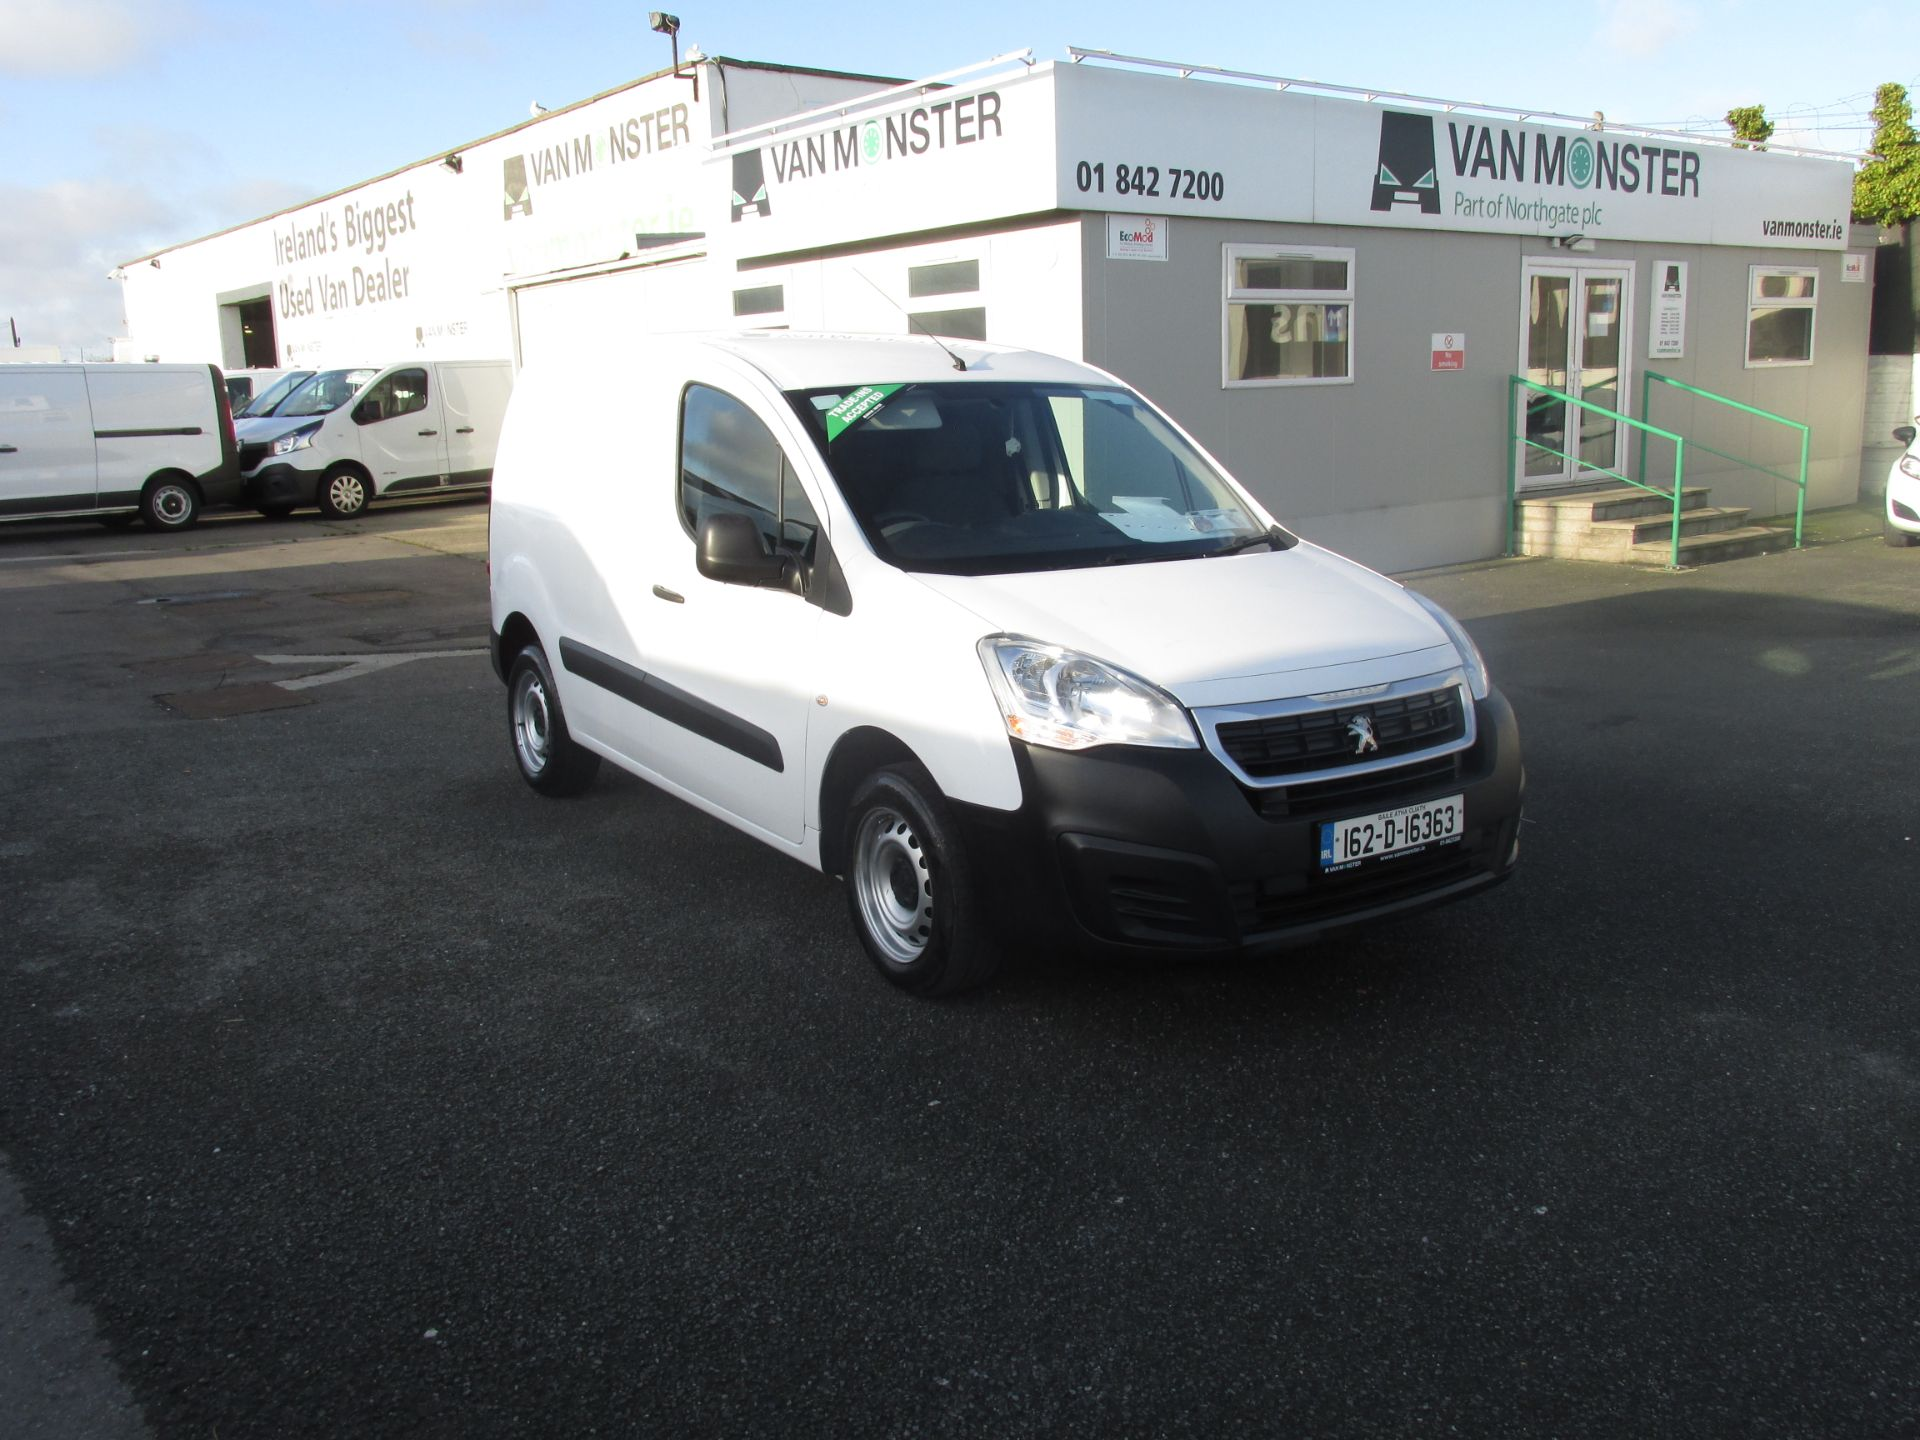 2016 Peugeot Partner #150 VANS TO VIEW IN SANTRY # (162D16363) Image 1